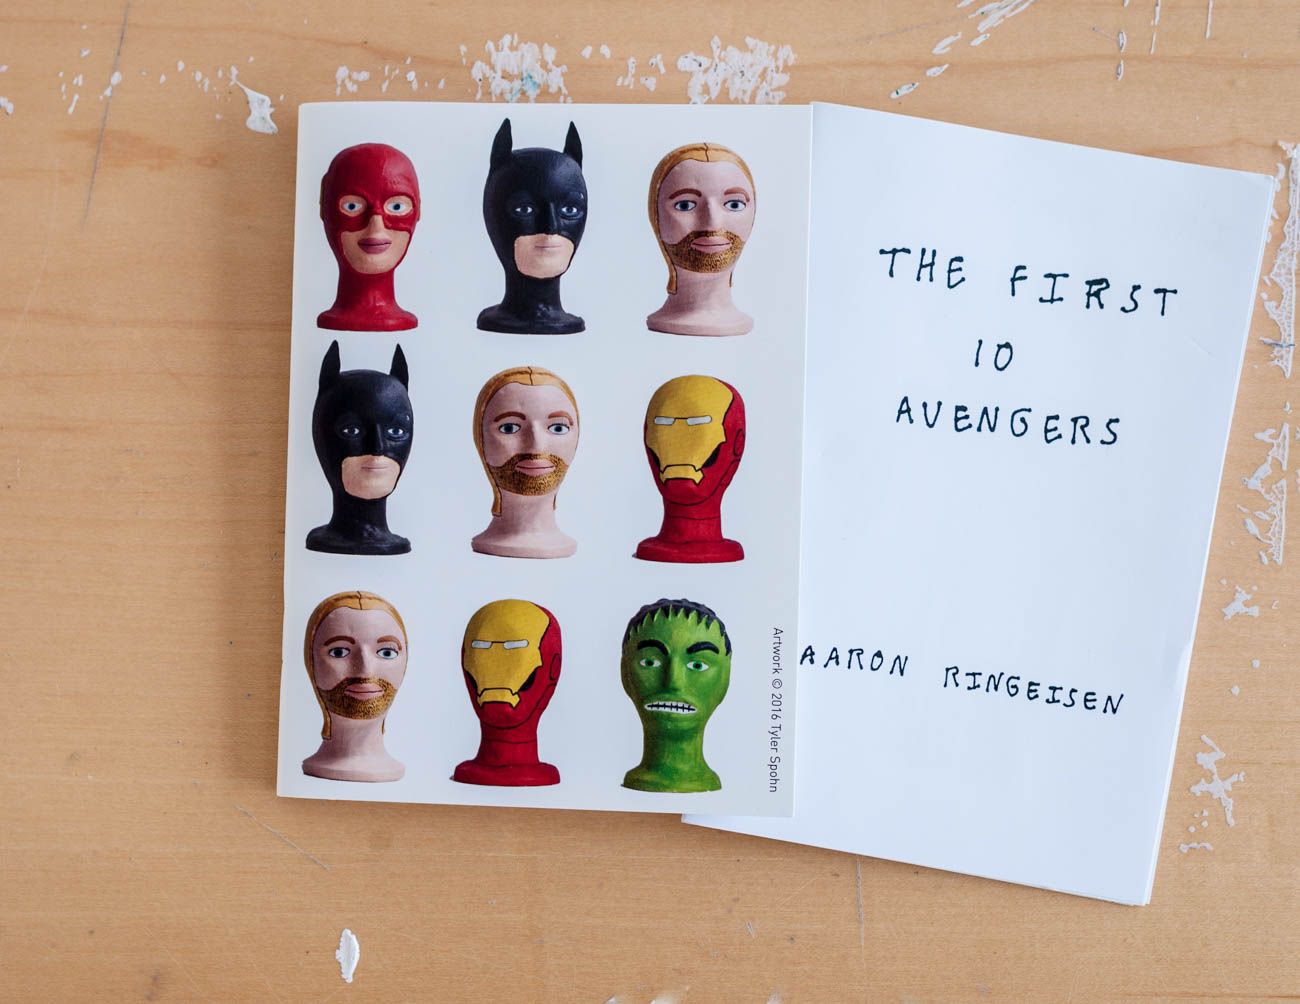 """The First 10 Avengers"" booklet by Aaron Ringeisen{ }/ Image: Kellie Coleman // Published: 1.30.20"